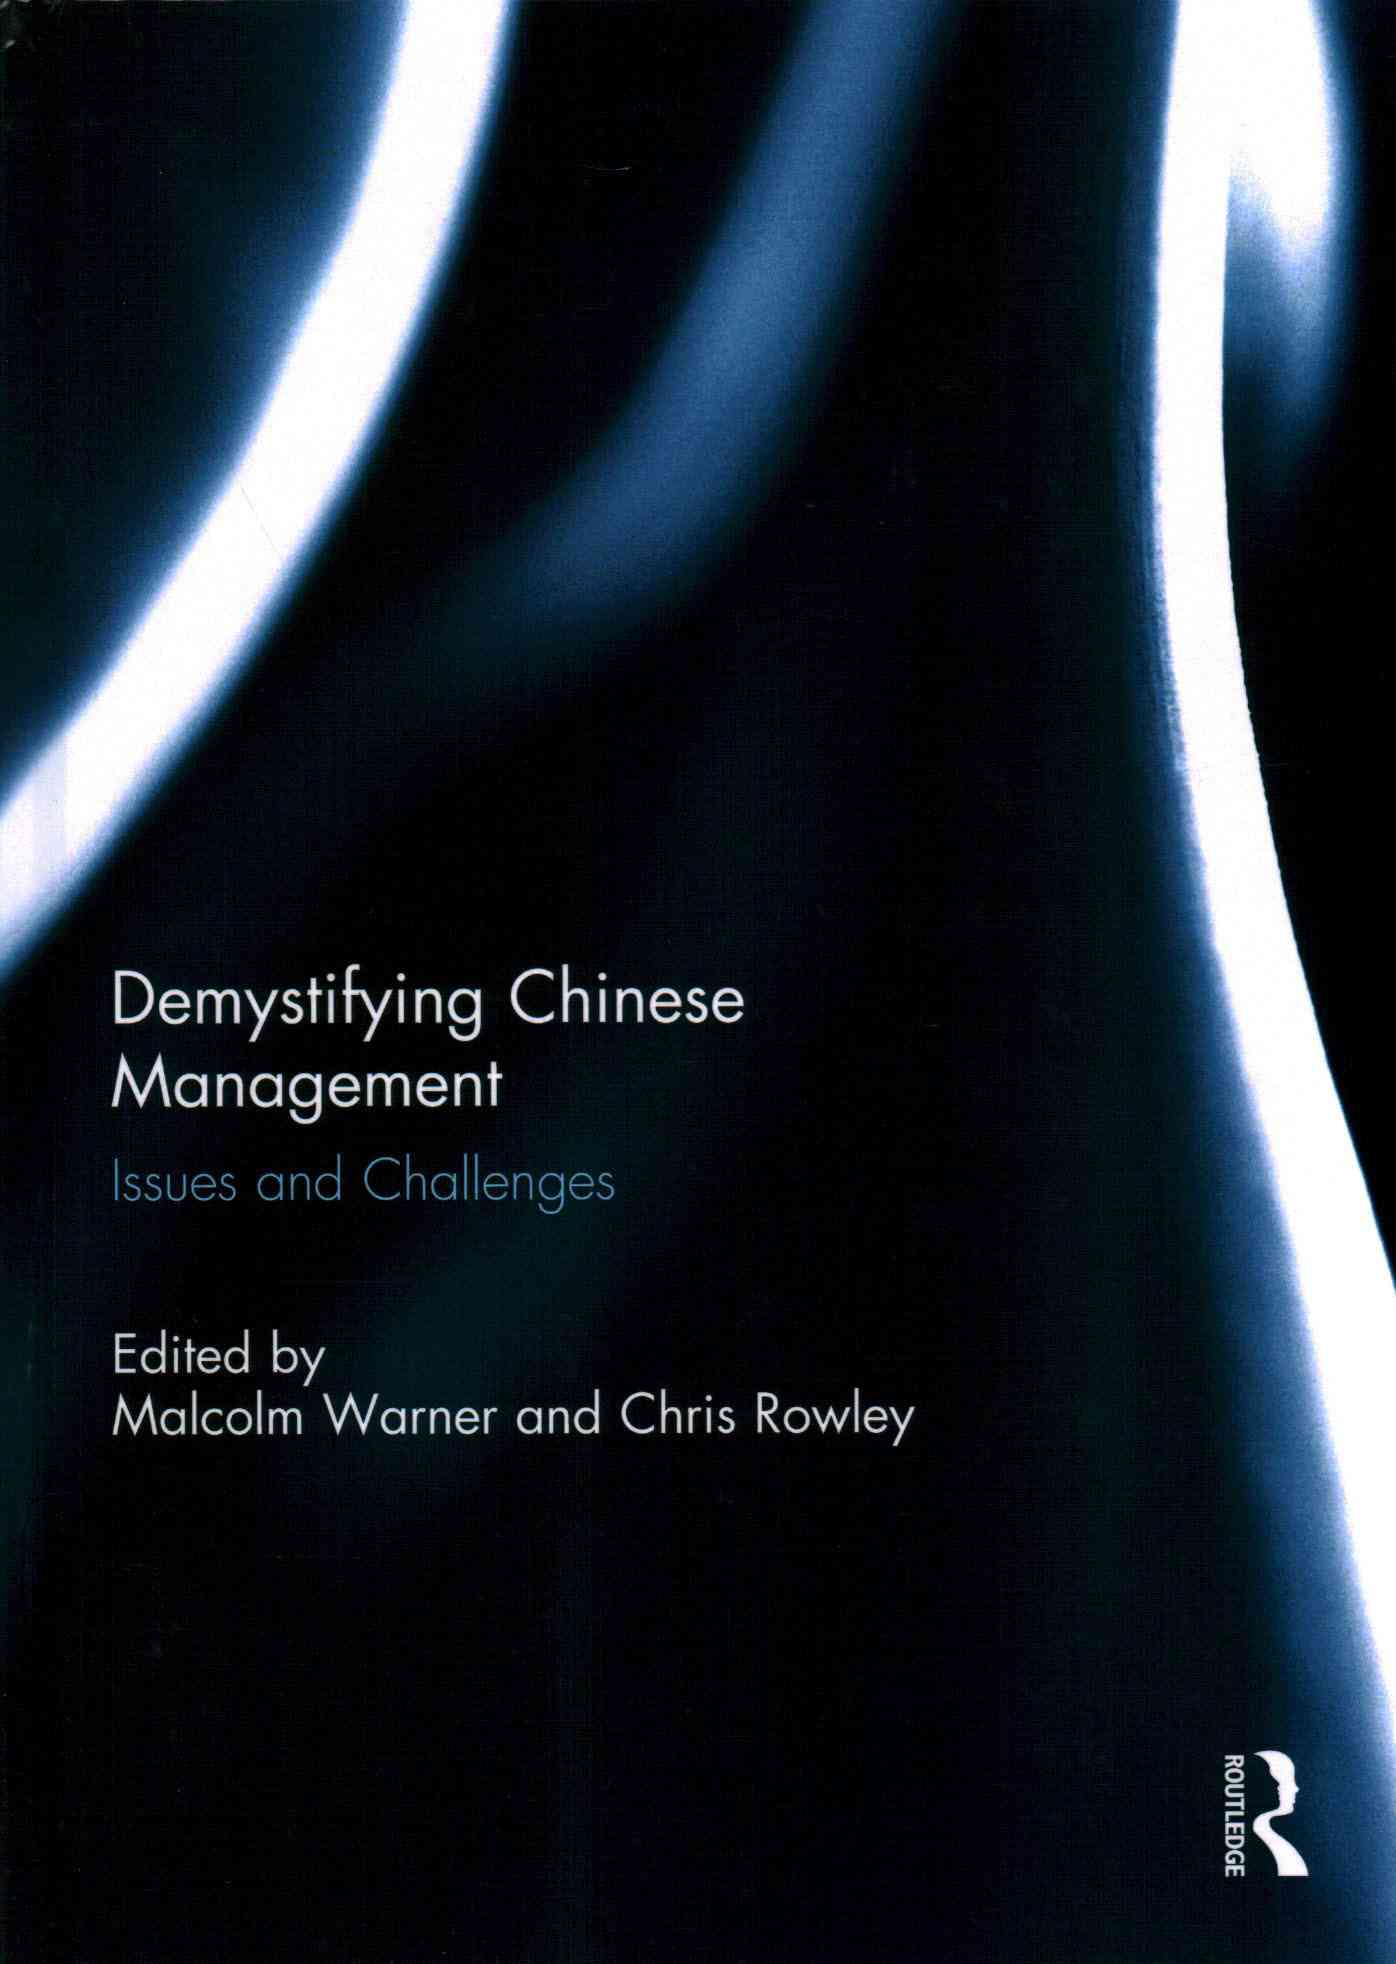 Demystifying Chinese Management By Warner, Malcolm (EDT)/ Rowley, Chris (EDT)